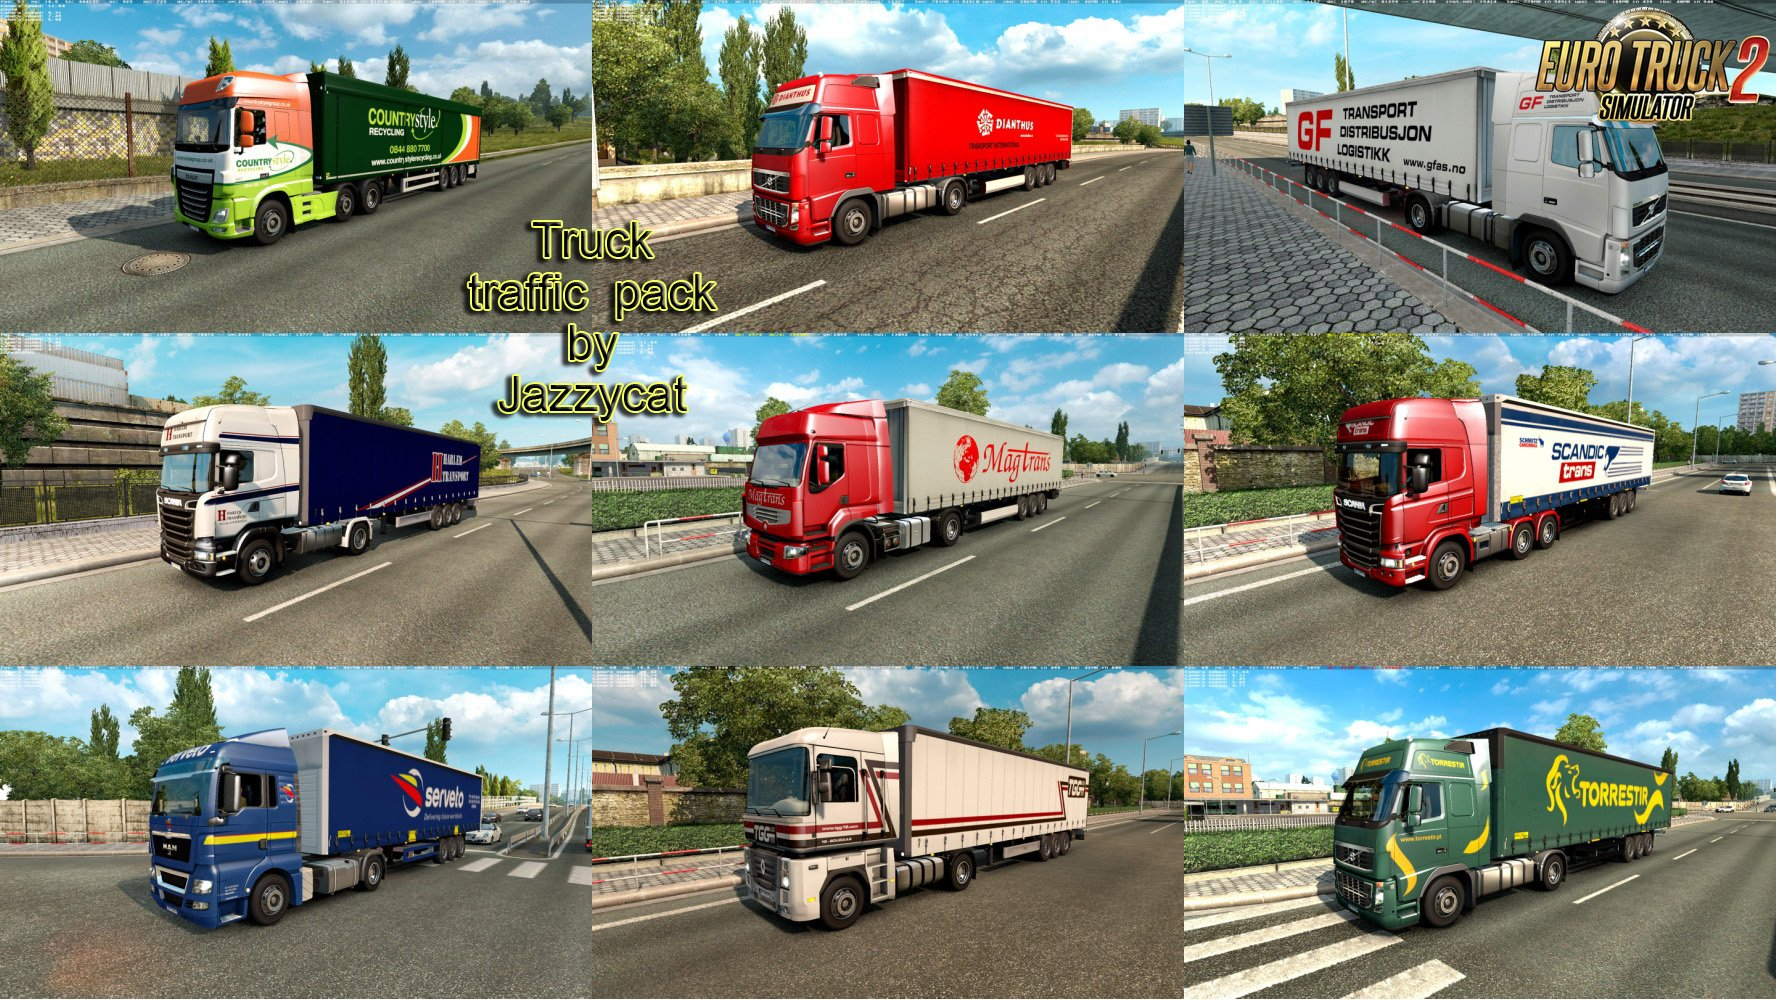 Painted Truck Traffic Pack v4.7 by Jazzycat